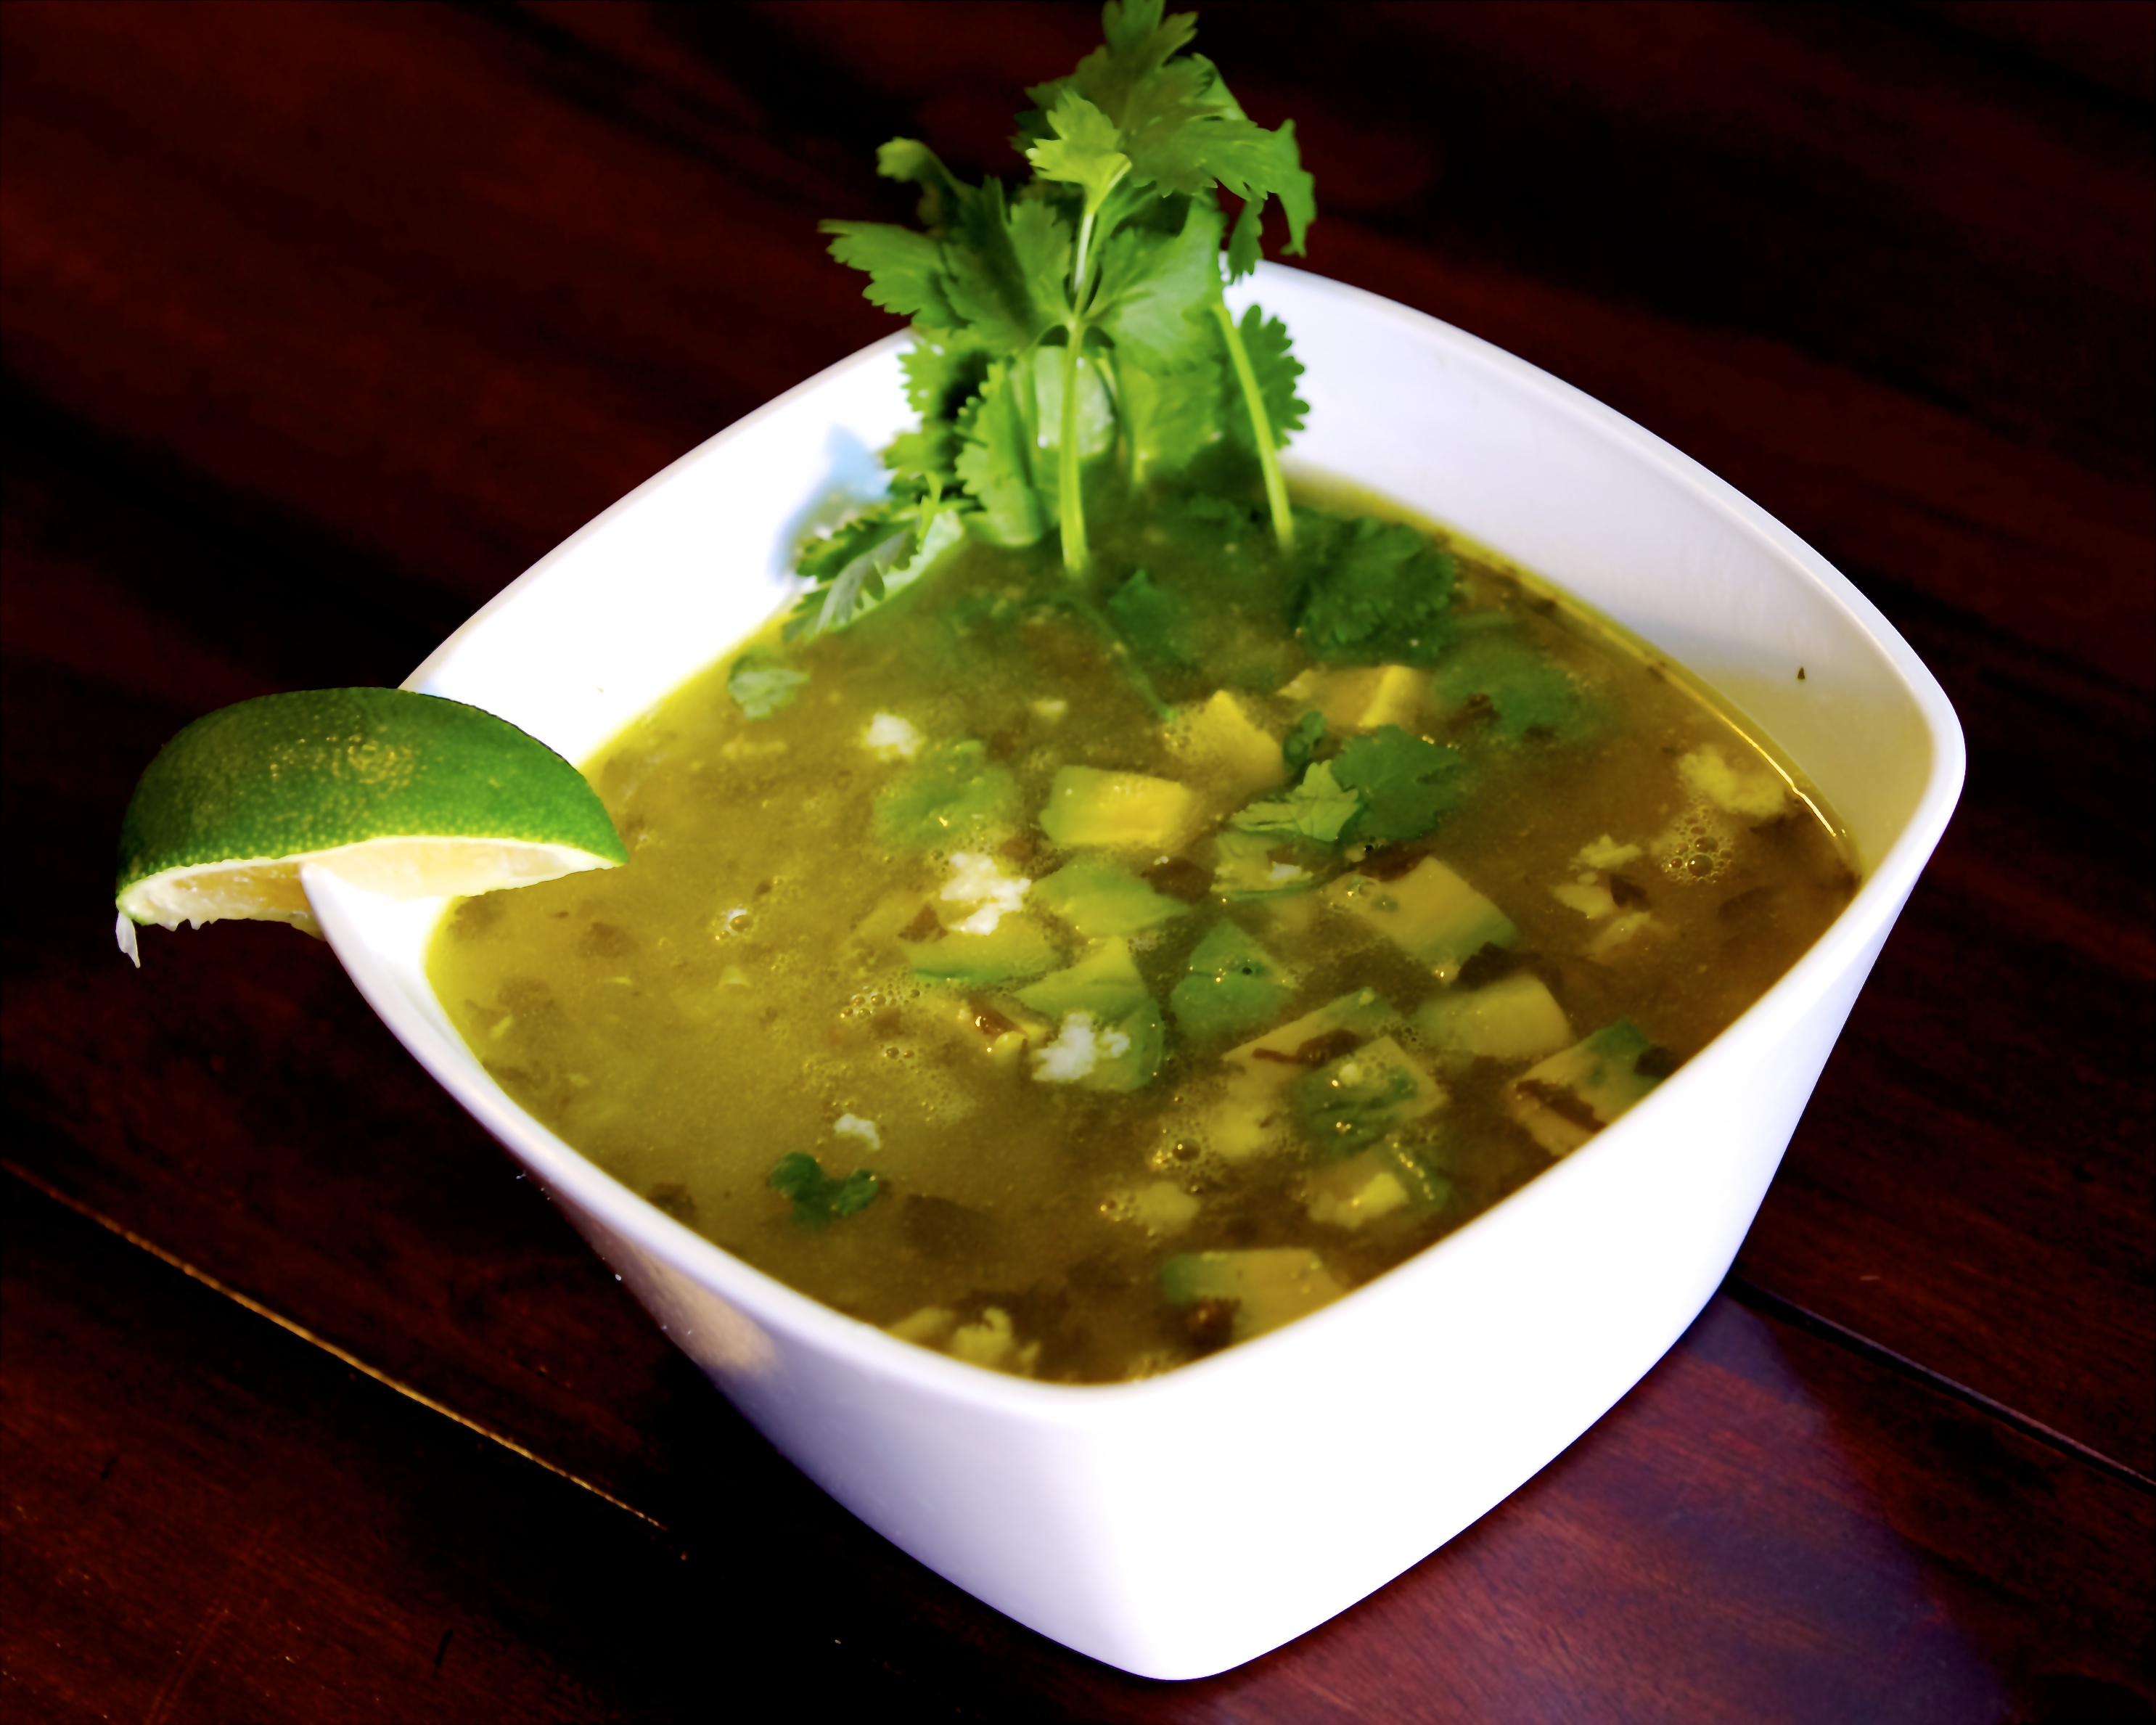 Tequila Lime soup